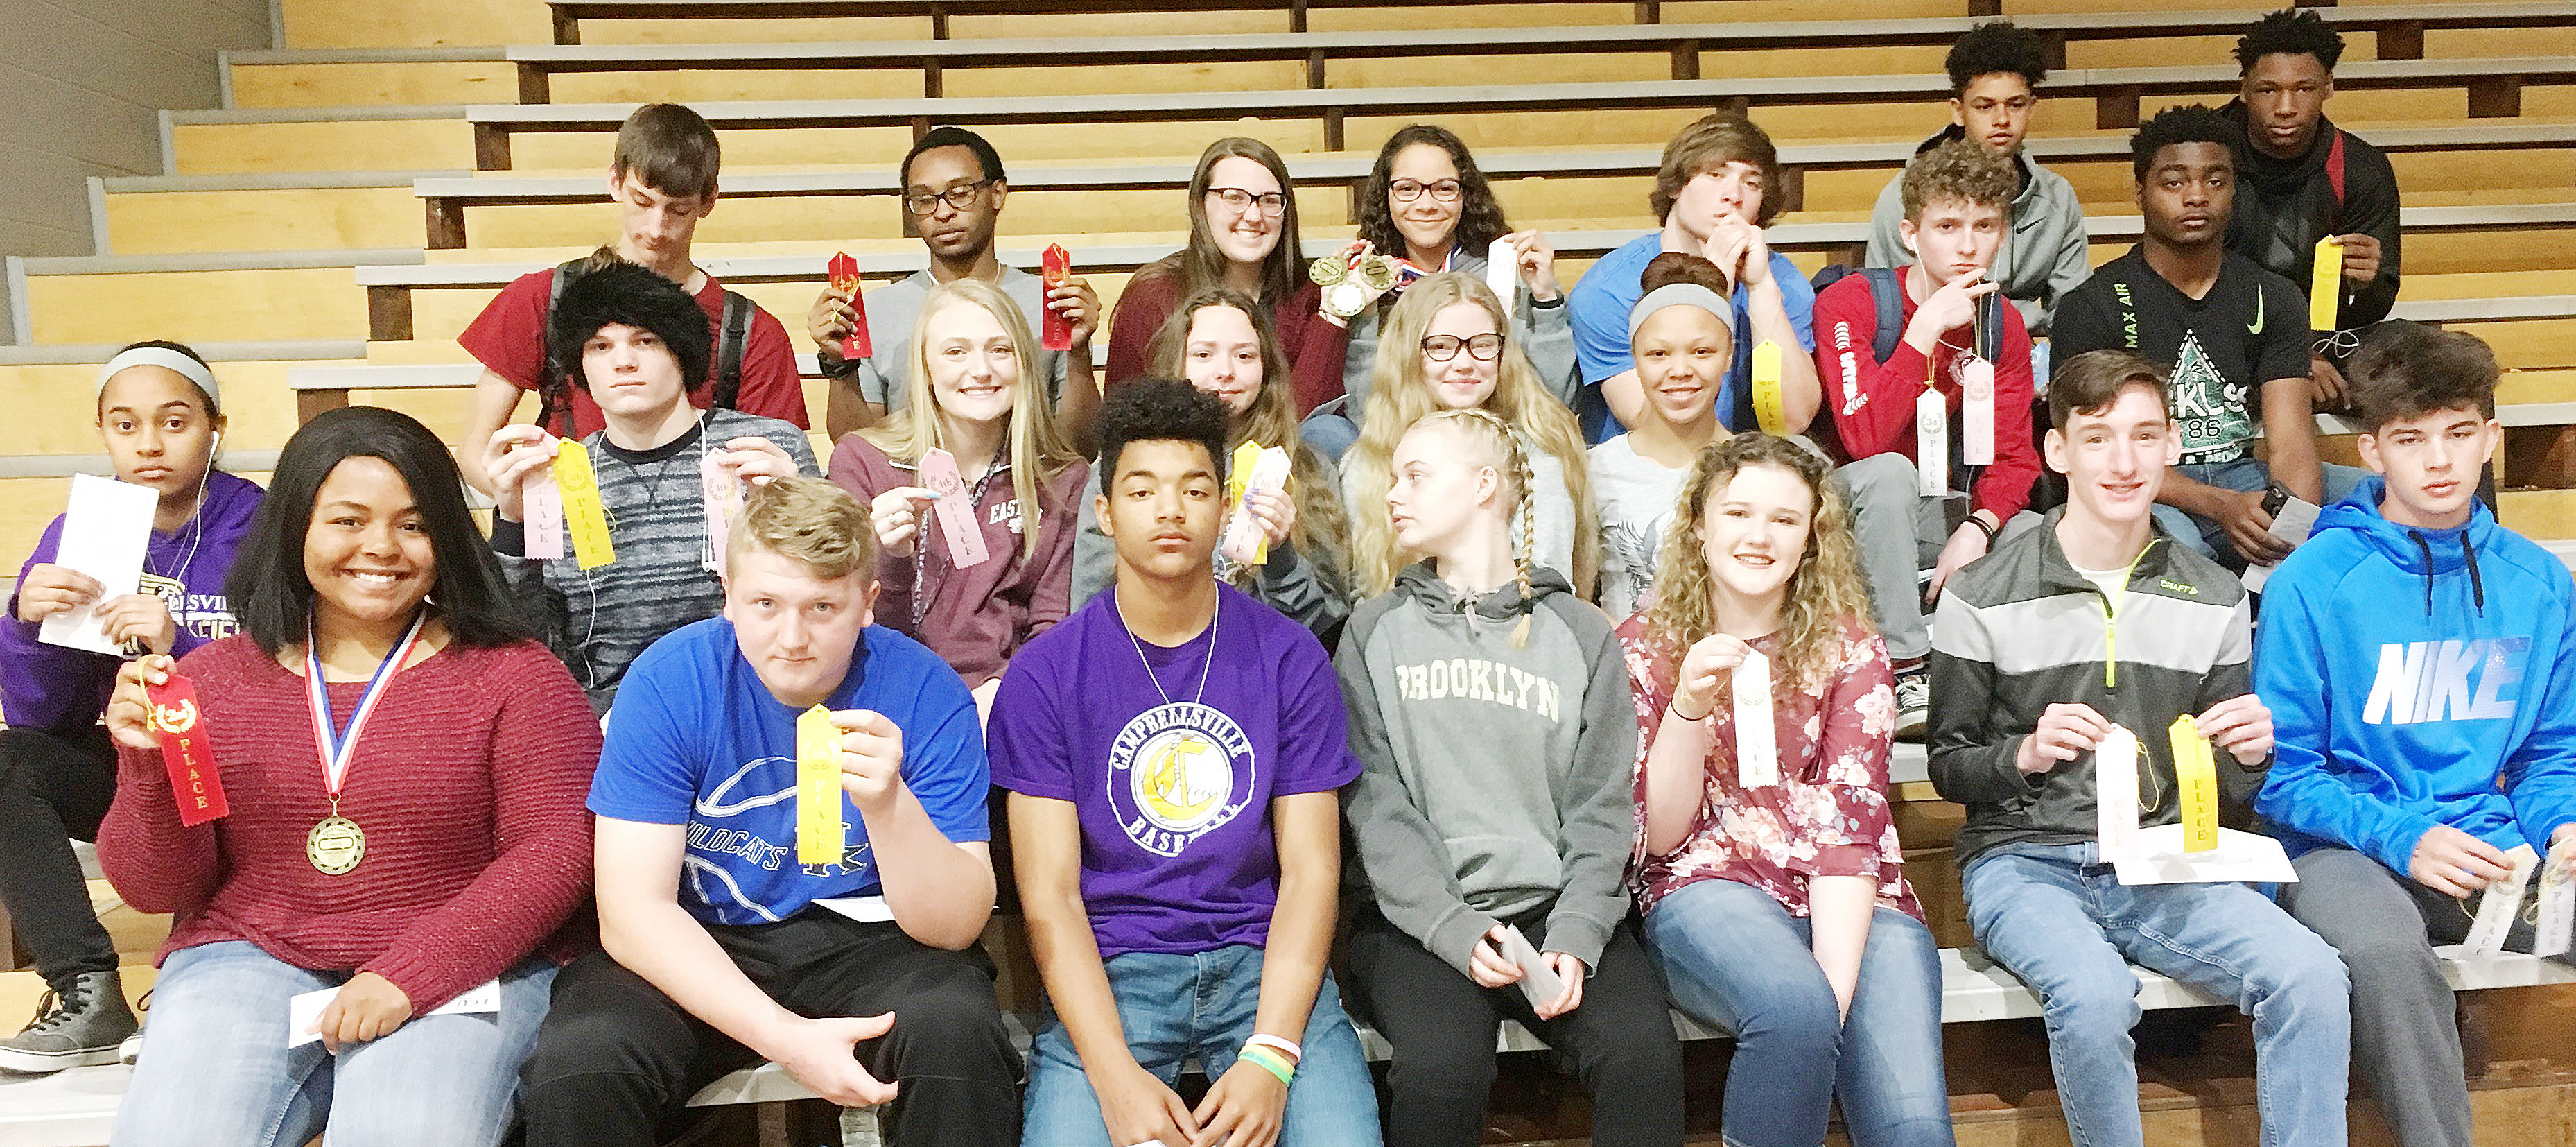 CHS track team finished the Heartland Conference meet in third place. From left, front, are junior Natalie Caldwell, freshmen Jake Dicken and Reggie Thomas, Campbellsville Middle School eighth-graders Gabby Skaggs and Abby Brisko, junior Ian McAninch and sophomore Mark Rigsby. Second row, sophomore Jasmine Coro, juniors Joe Pipes, Abbie Dicken and Christa Riggs, Campbellsville Middle School seventh-grader Whitney Frashure and eighth-grader Kitana Taylor. Third row, juniors Evan McAninch and Daesean Vancleave, sophomores Haley Morris and Taliyah Hazelwood and juniors Tristan Johnson, Jackson Hinton and Charlie Pettigrew. Back, sophomore Mikael Vaught and junior Taj Sanders.